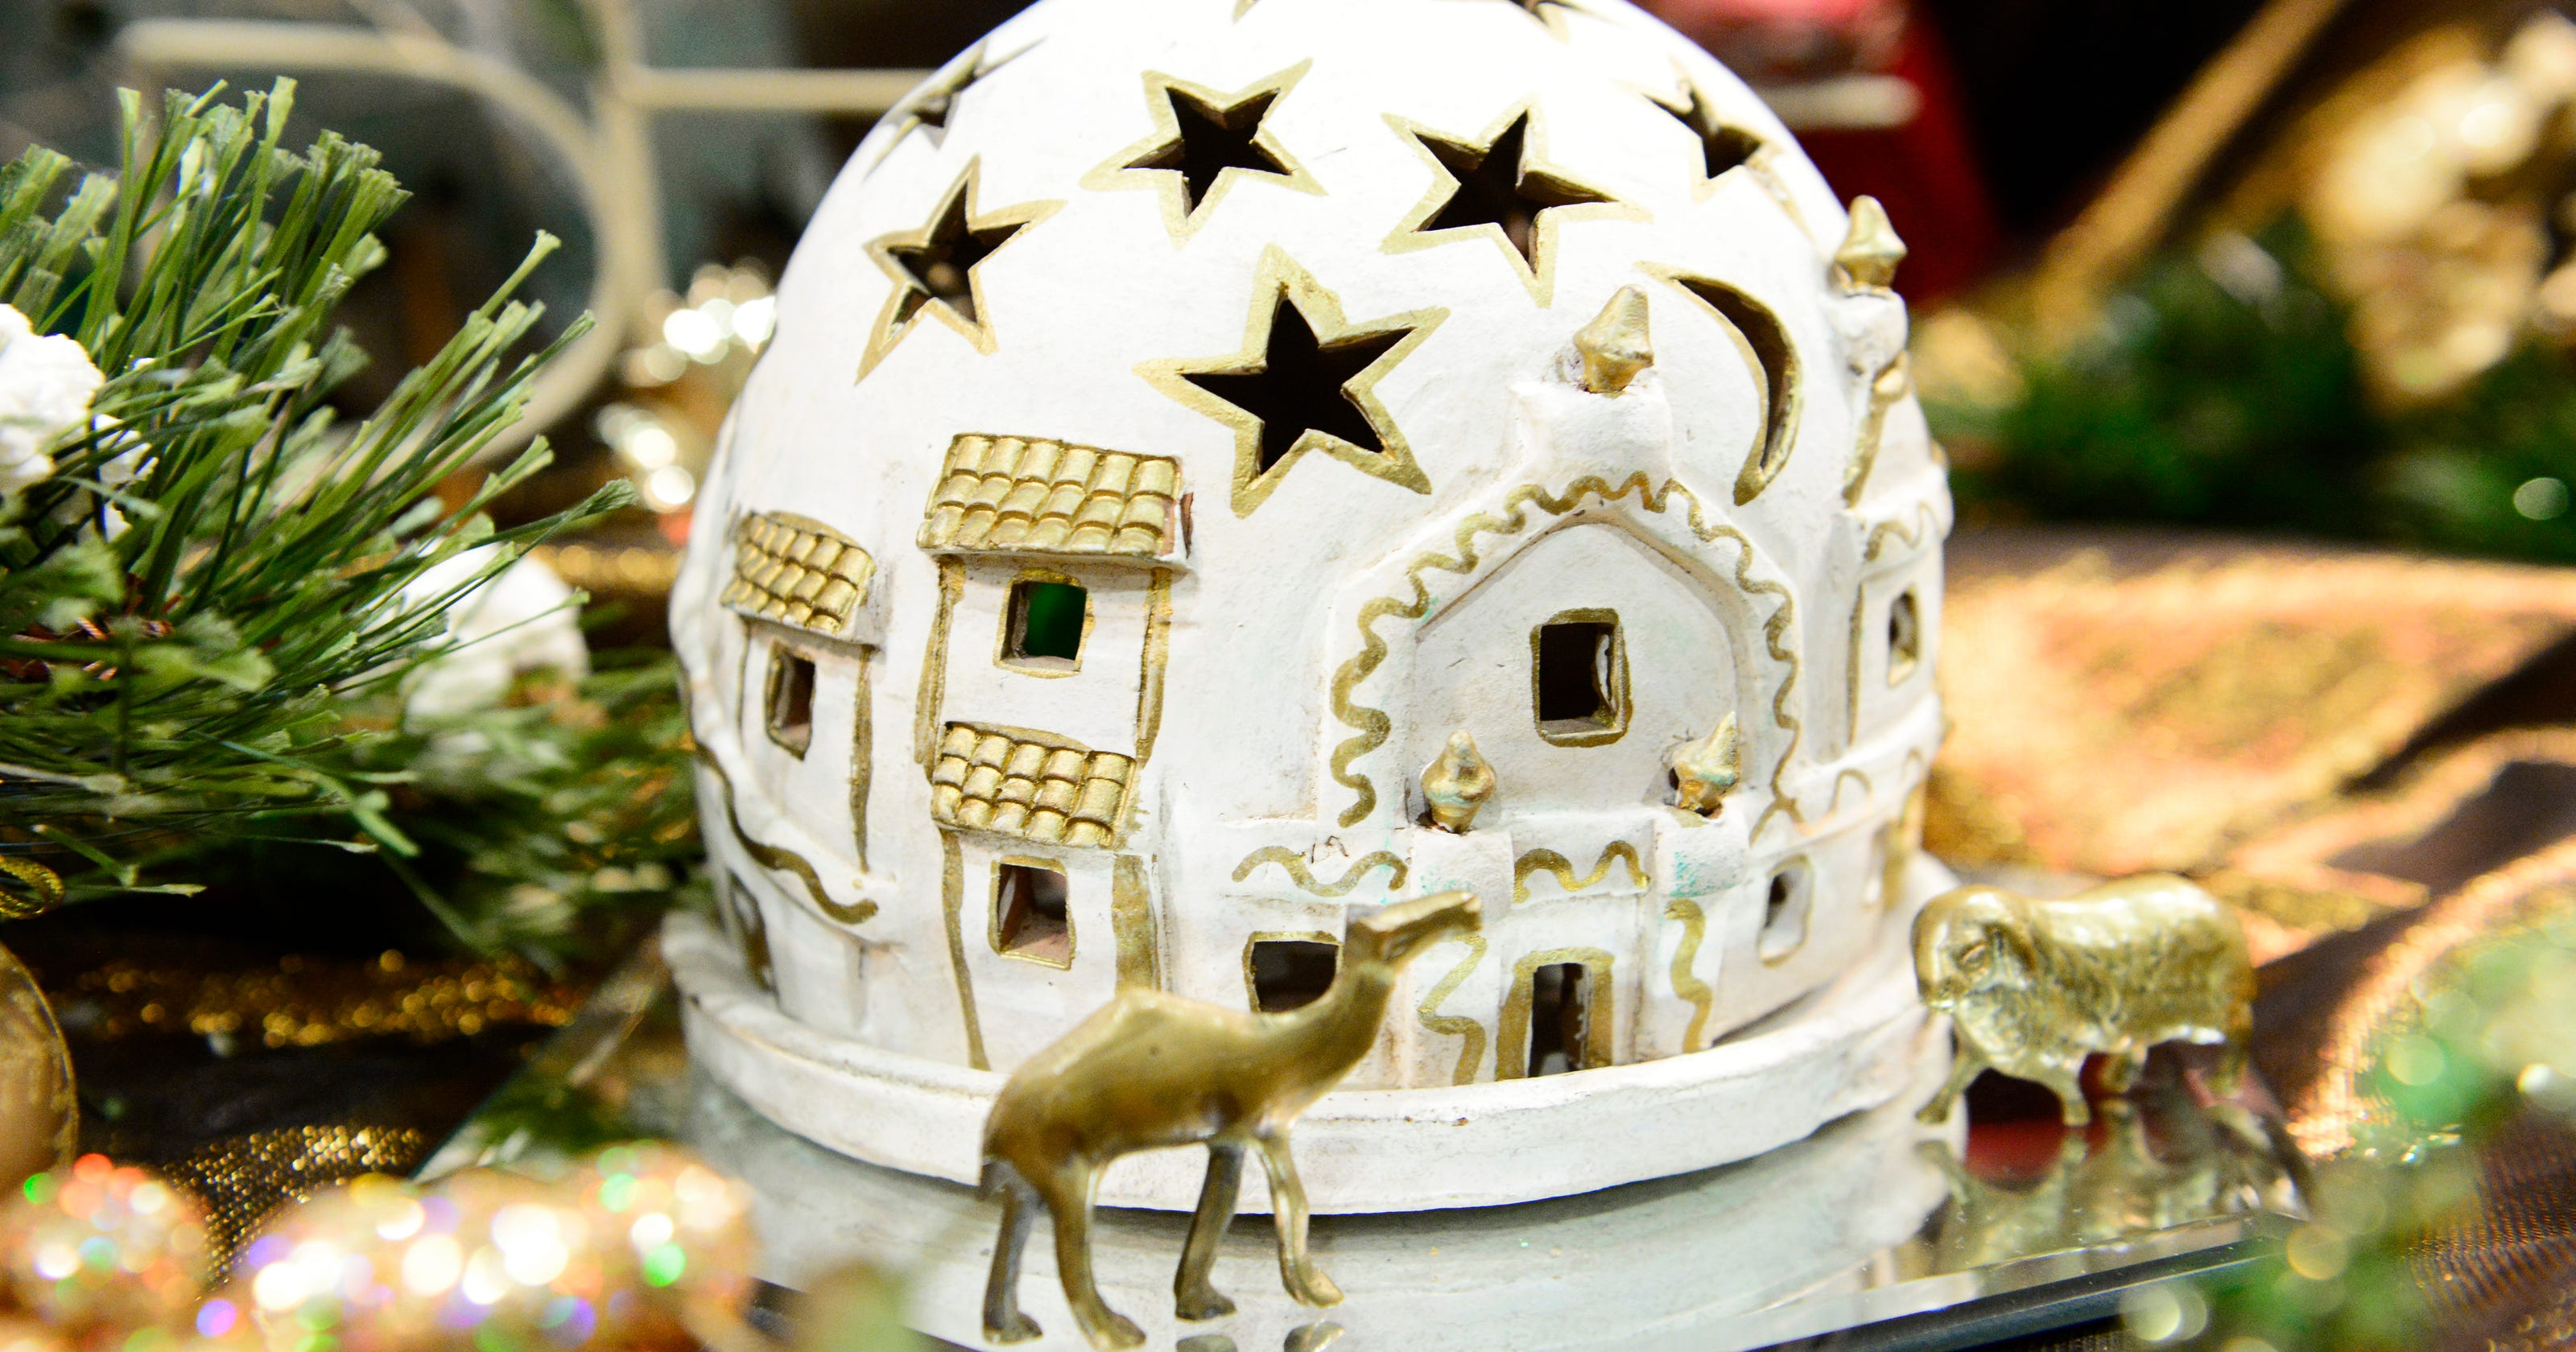 Manitowoc events: Wonder of Christmas nativity, MSO Tour of Homes set